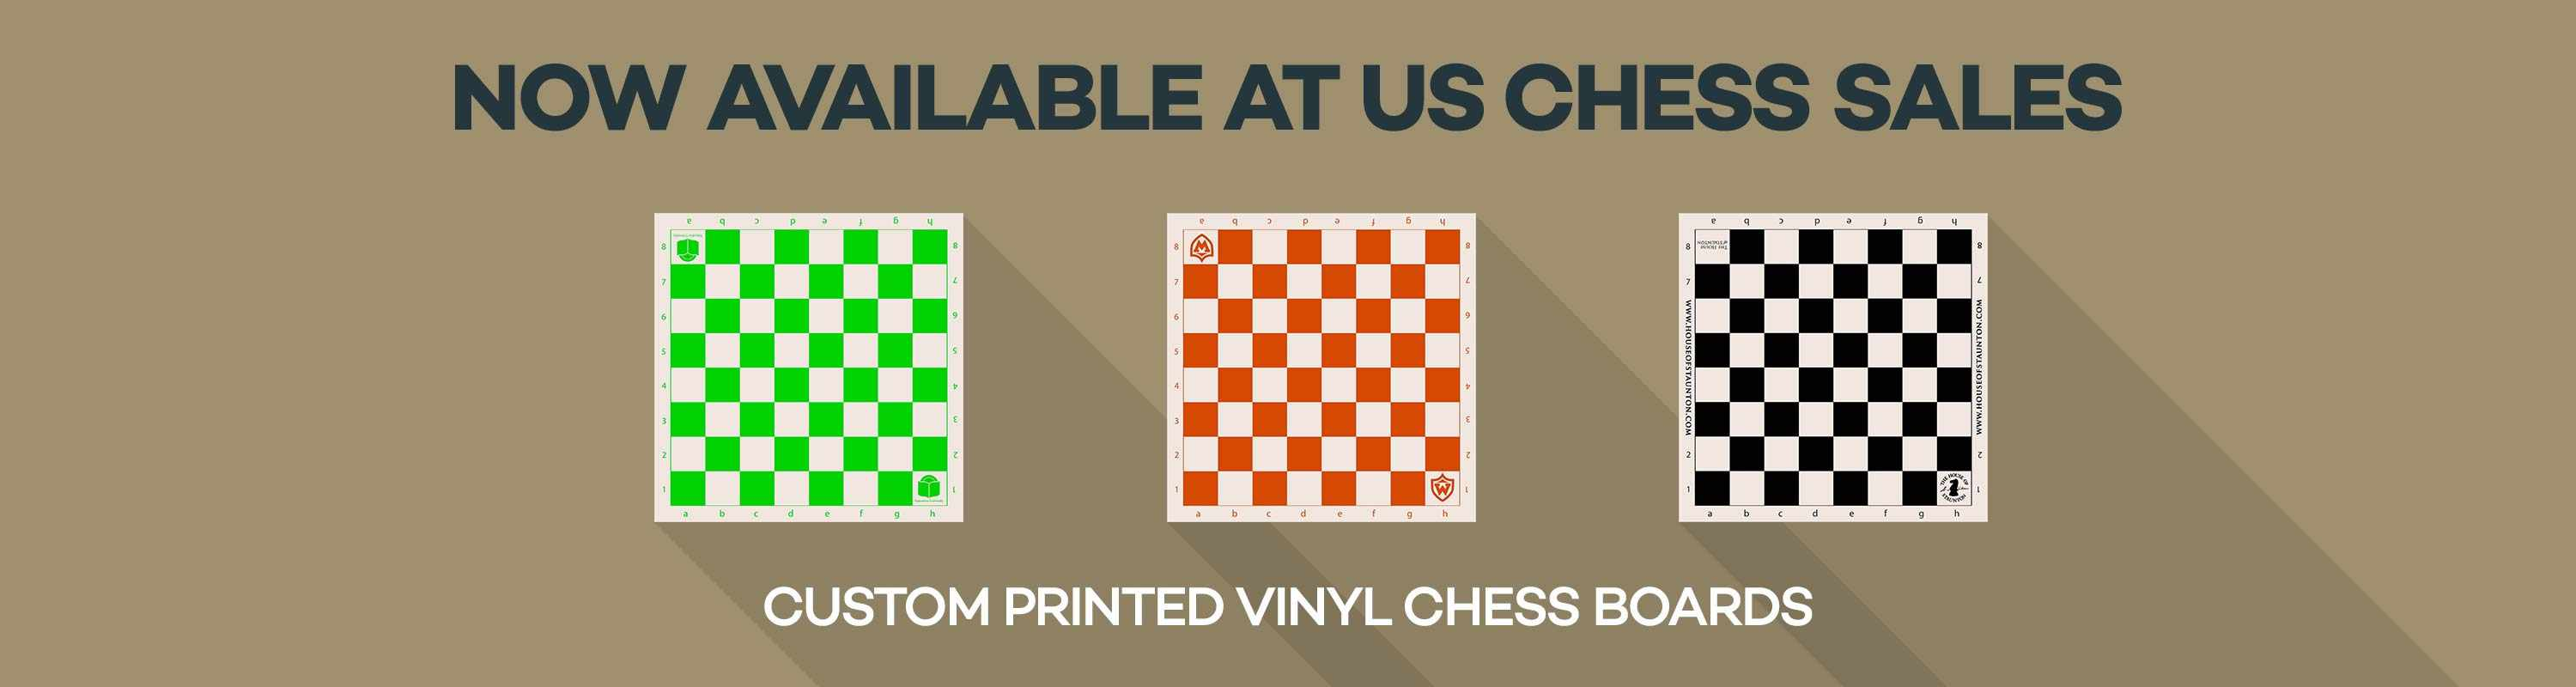 Custom Printed Vinyl Score Boards at US Chess Sales